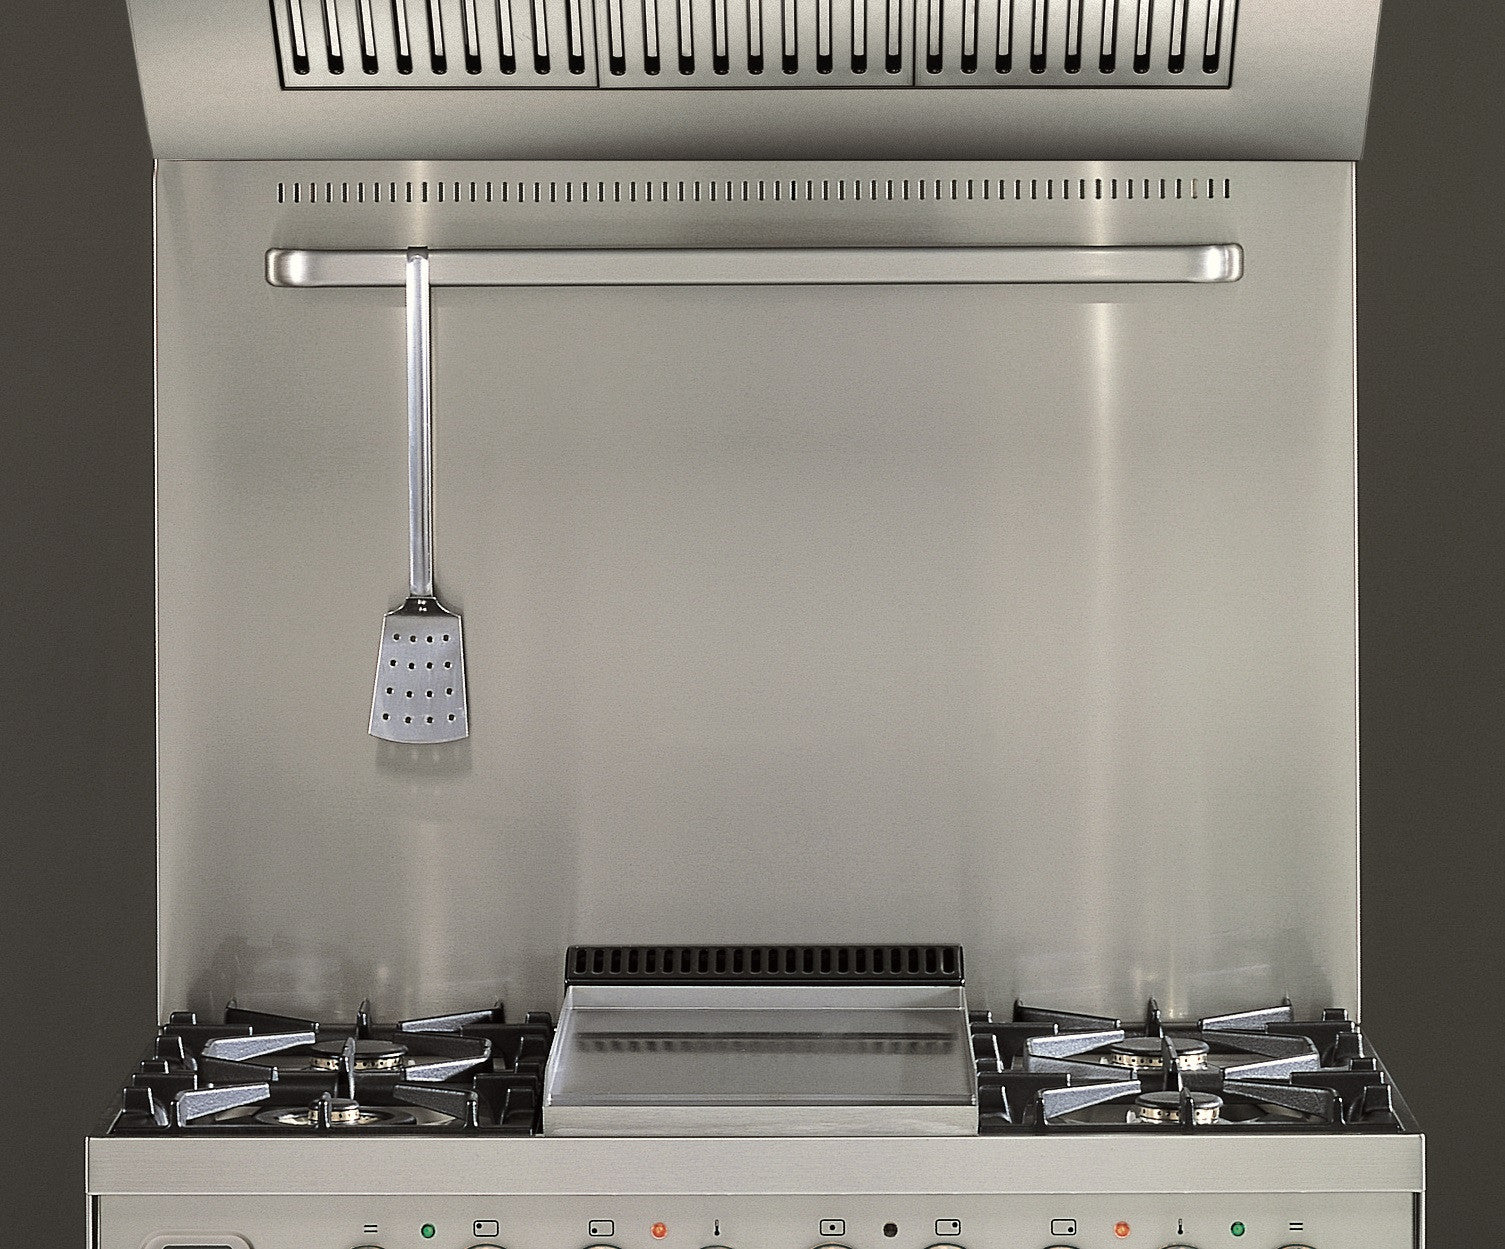 88c32c6a93 Stainless Steel Back Panel for Range Cookers at ILVE. - ILVE Appliances